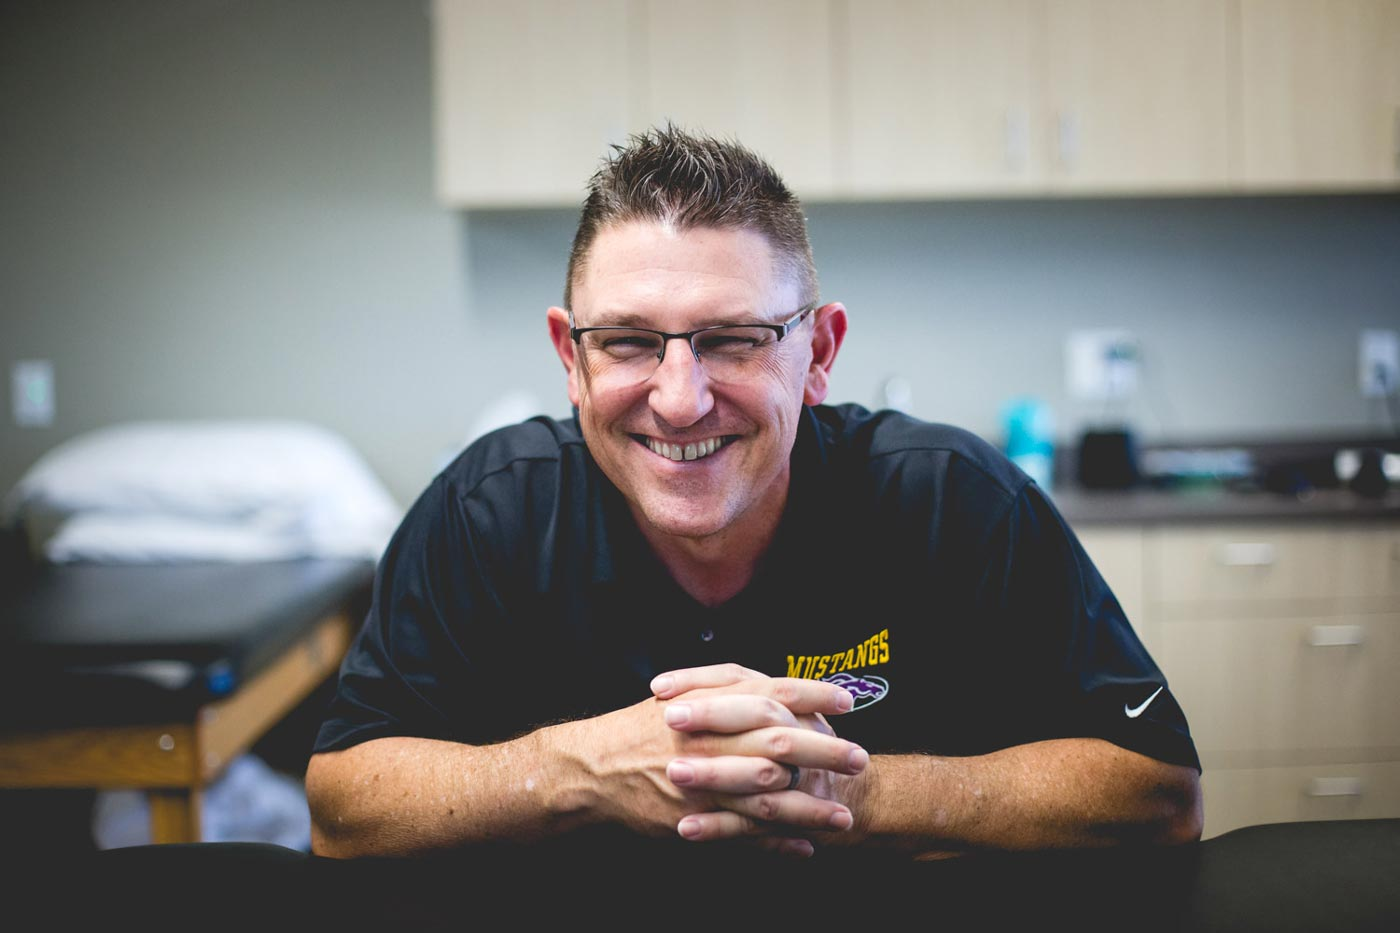 lead-physical-therapist-Mark-jagodzinski-at-rise-ortho-sports-pt-in-surprise-az-photo-by-danielle-at-prefocus-solutions